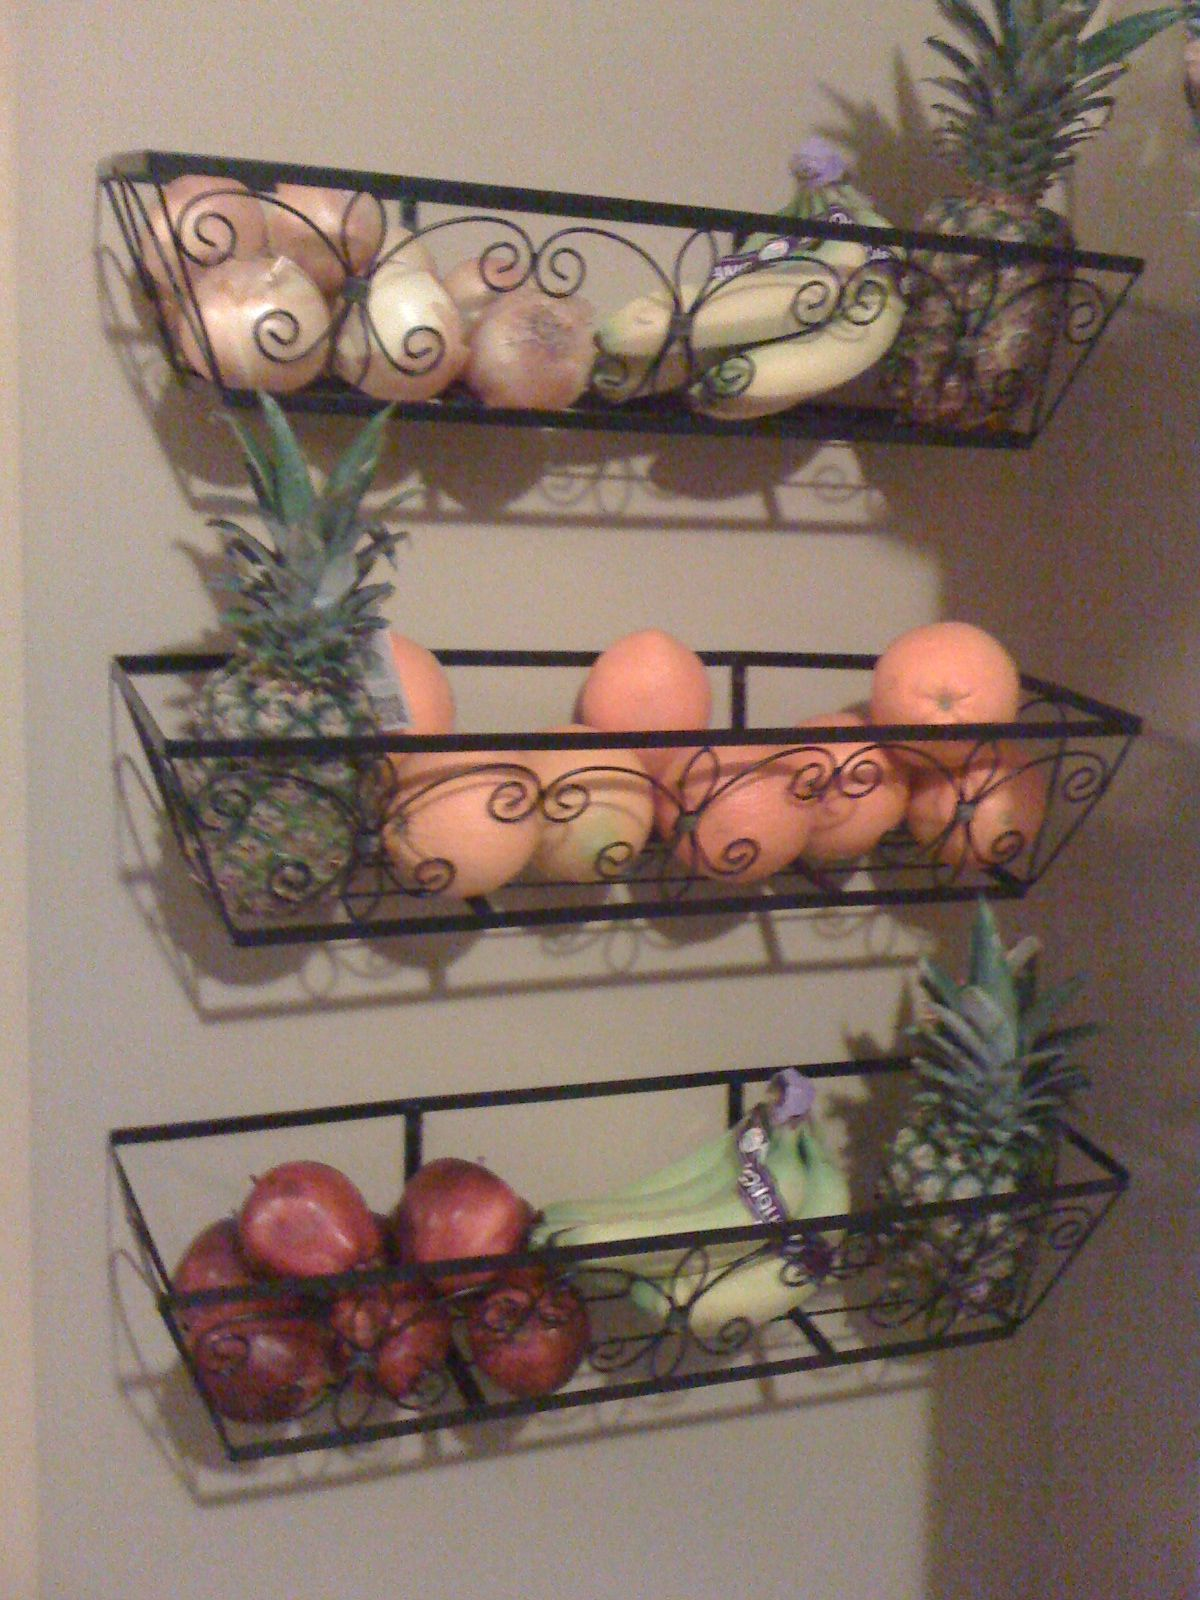 Check out my new kitchen baskets Purchased outdoor garden baskets